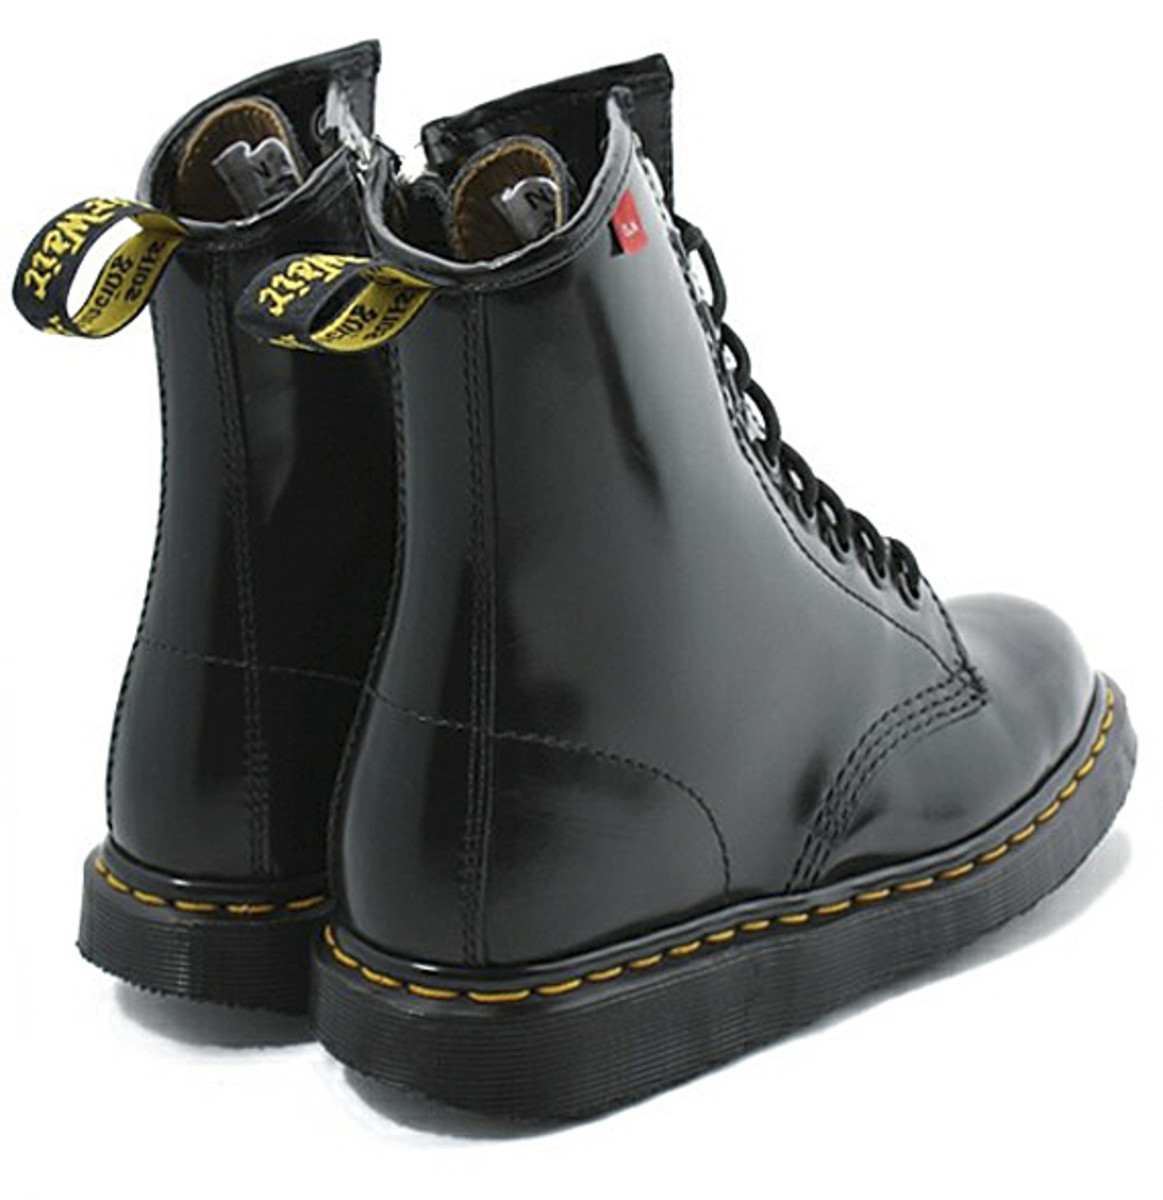 dr-martens-bedwin-heartbreaker-dr-know-boots-04